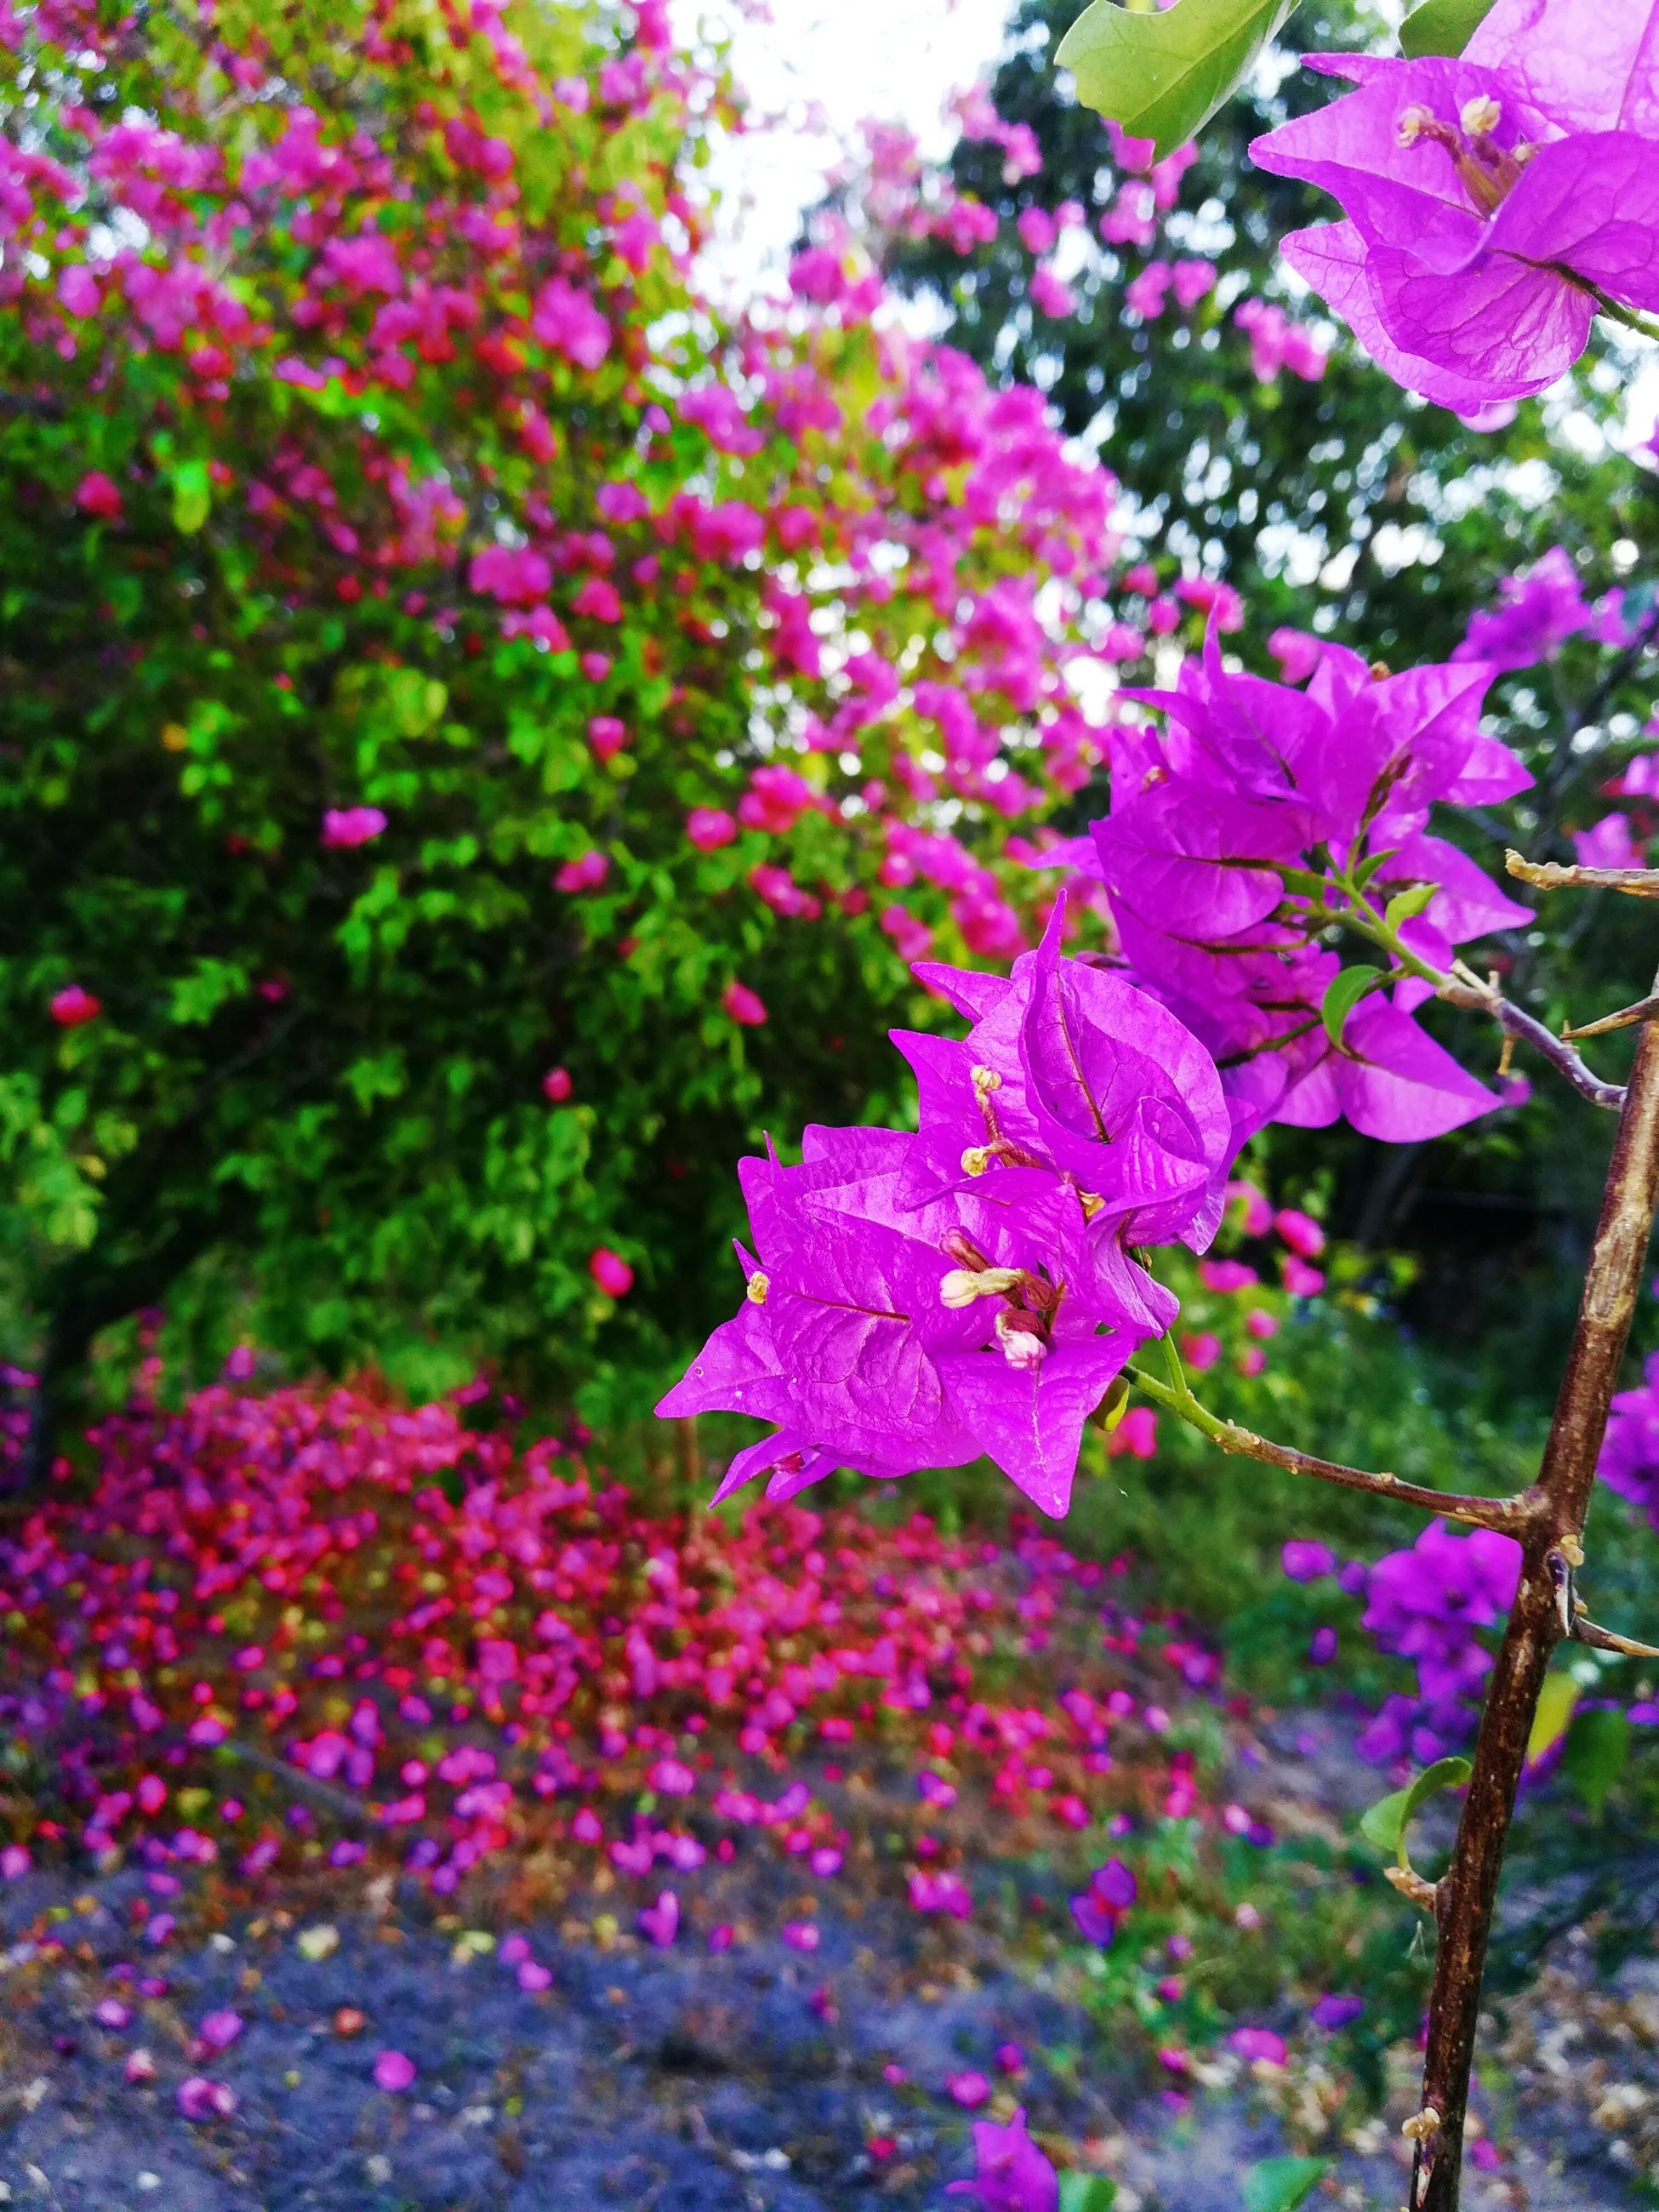 growth, flower, nature, beauty in nature, plant, fragility, purple, no people, freshness, blooming, pink color, outdoors, petal, leaf, day, close-up, flower head